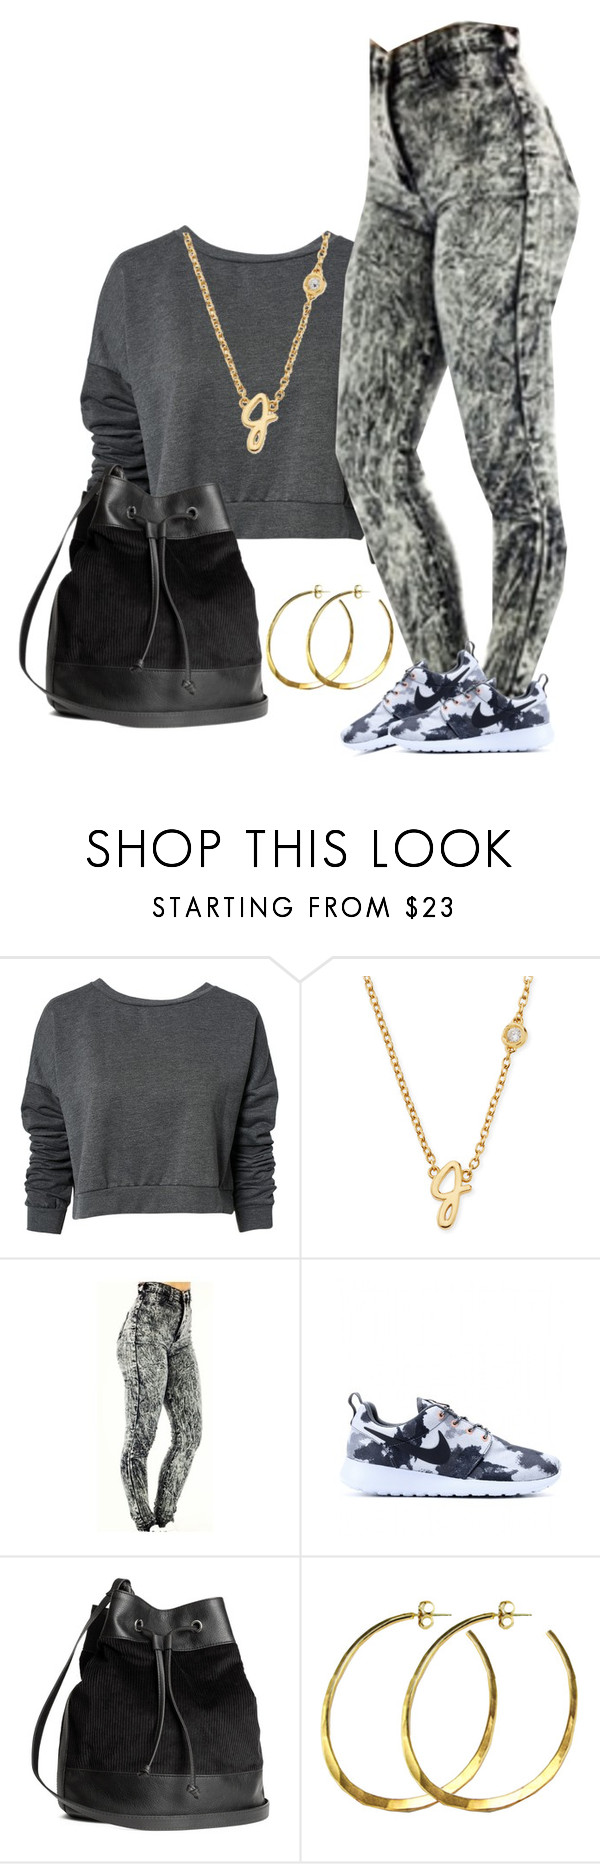 """""""Untitled #465"""" by brooklyn-taylor-ford ❤ liked on Polyvore featuring ONLY, Sydney Evan, NIKE, H&M and Rebecca Norman"""